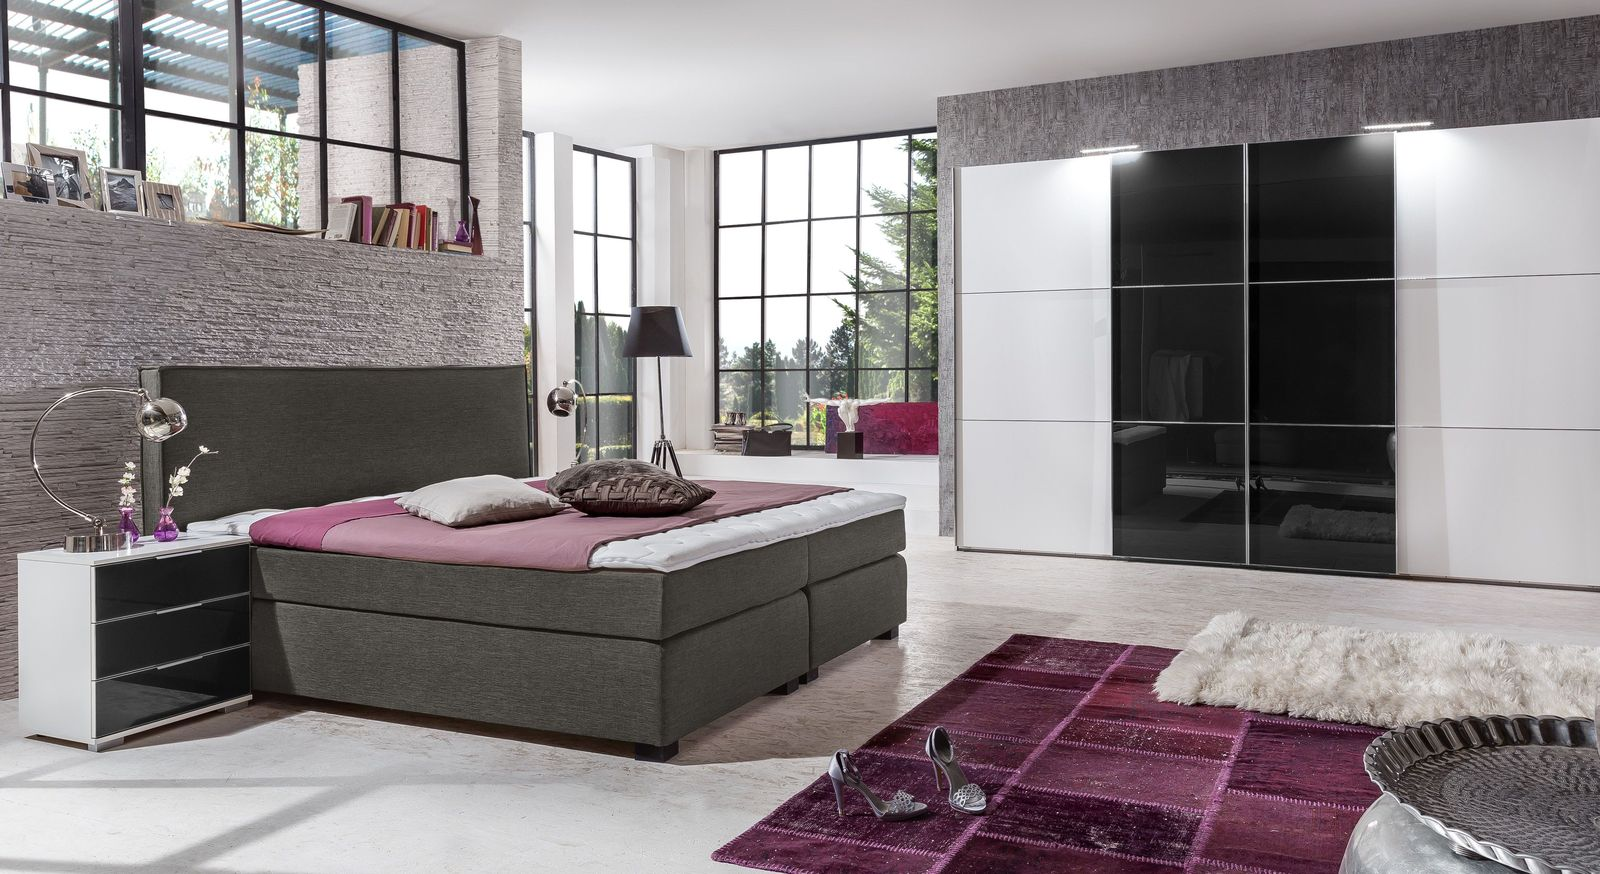 schwarz wei er kleiderschrank mit glas schwebet ren taipana. Black Bedroom Furniture Sets. Home Design Ideas